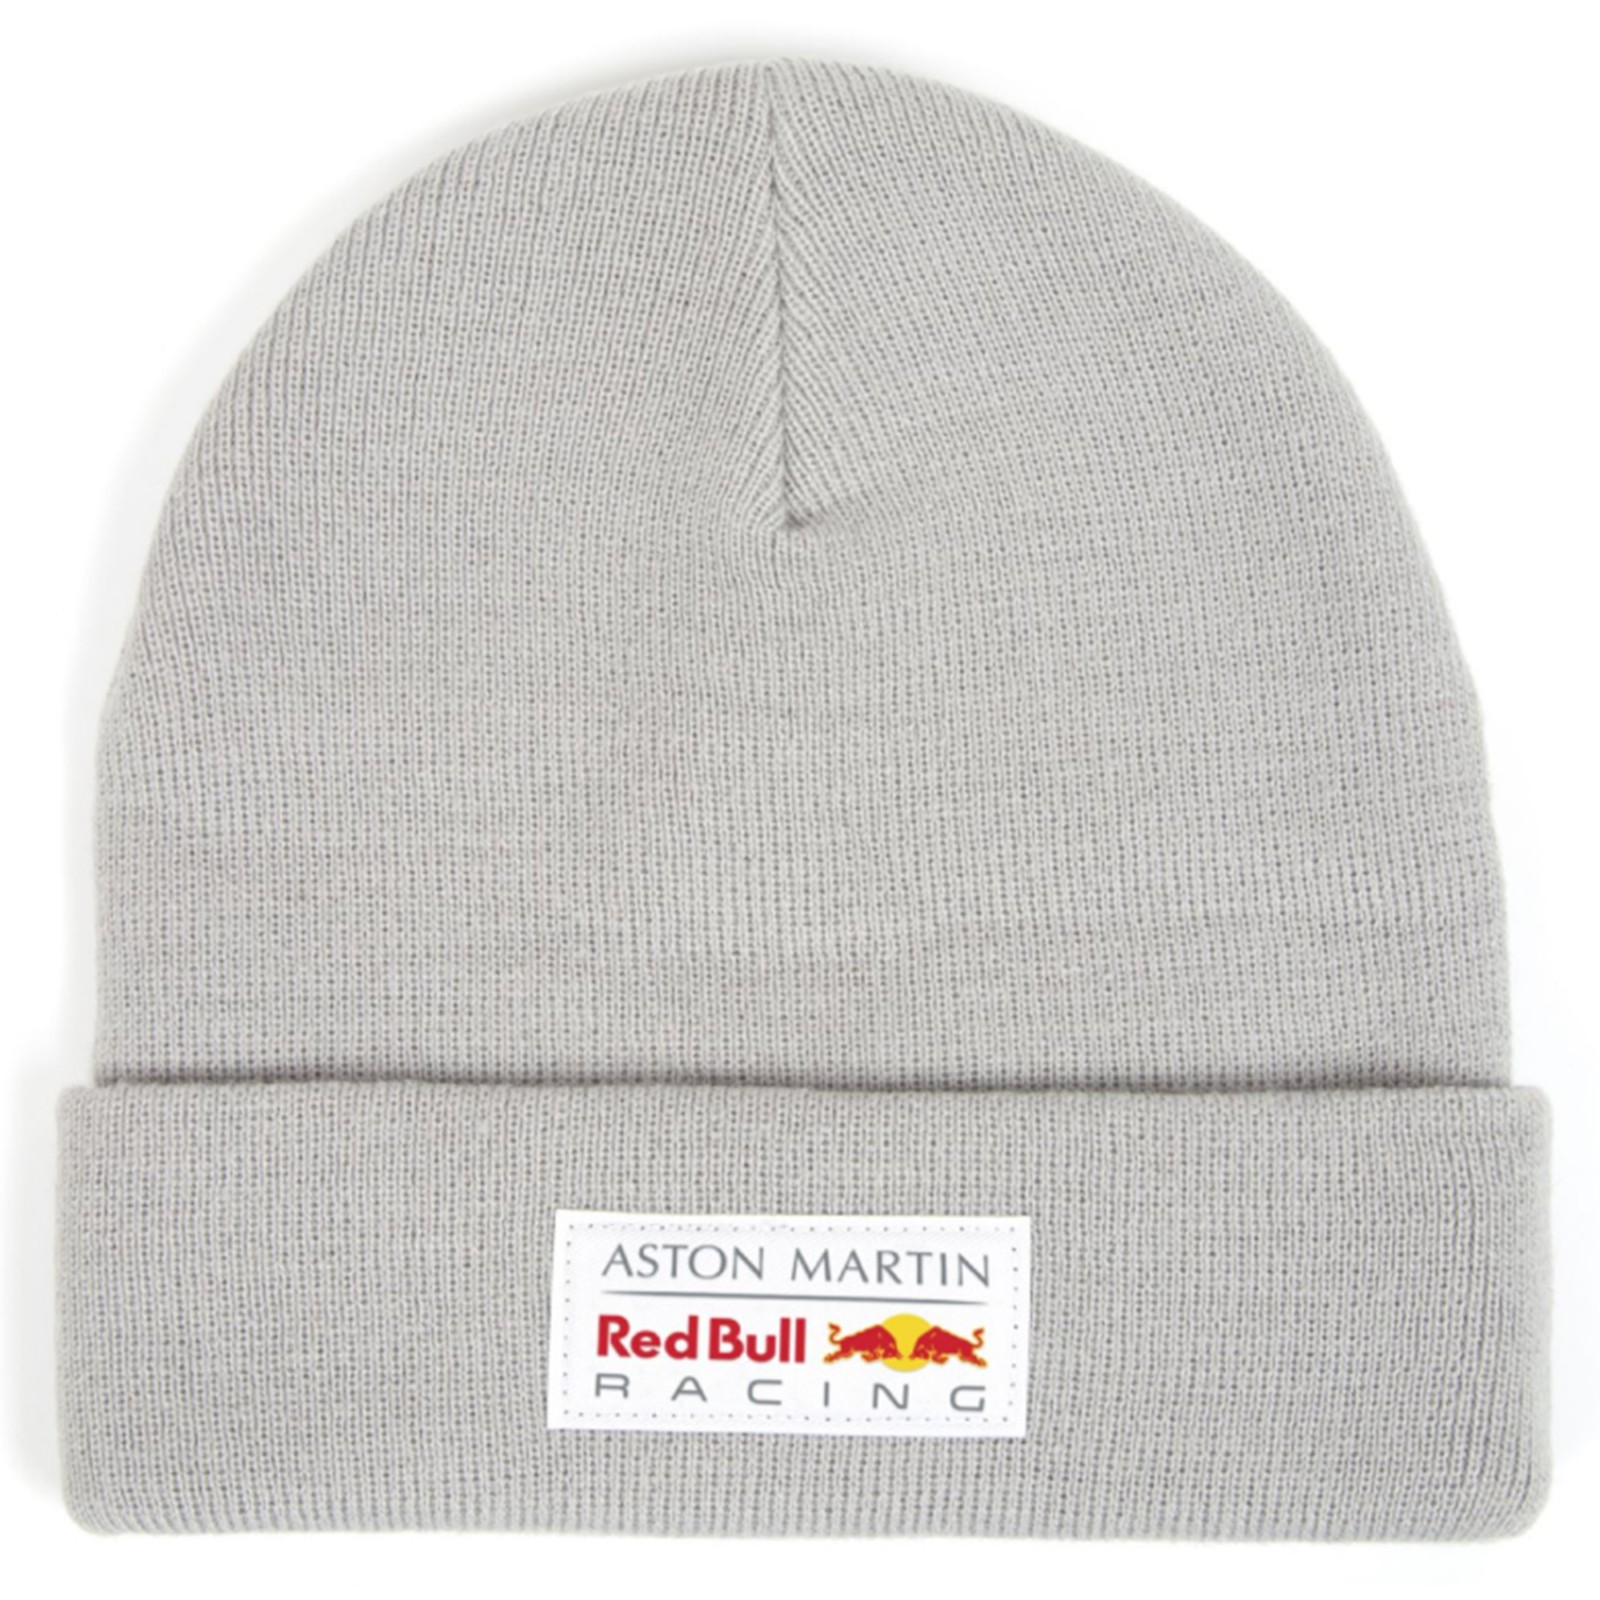 Details about Aston Martin Red Bull Racing Classic Adult Beanie Hat d0376d4b92a2